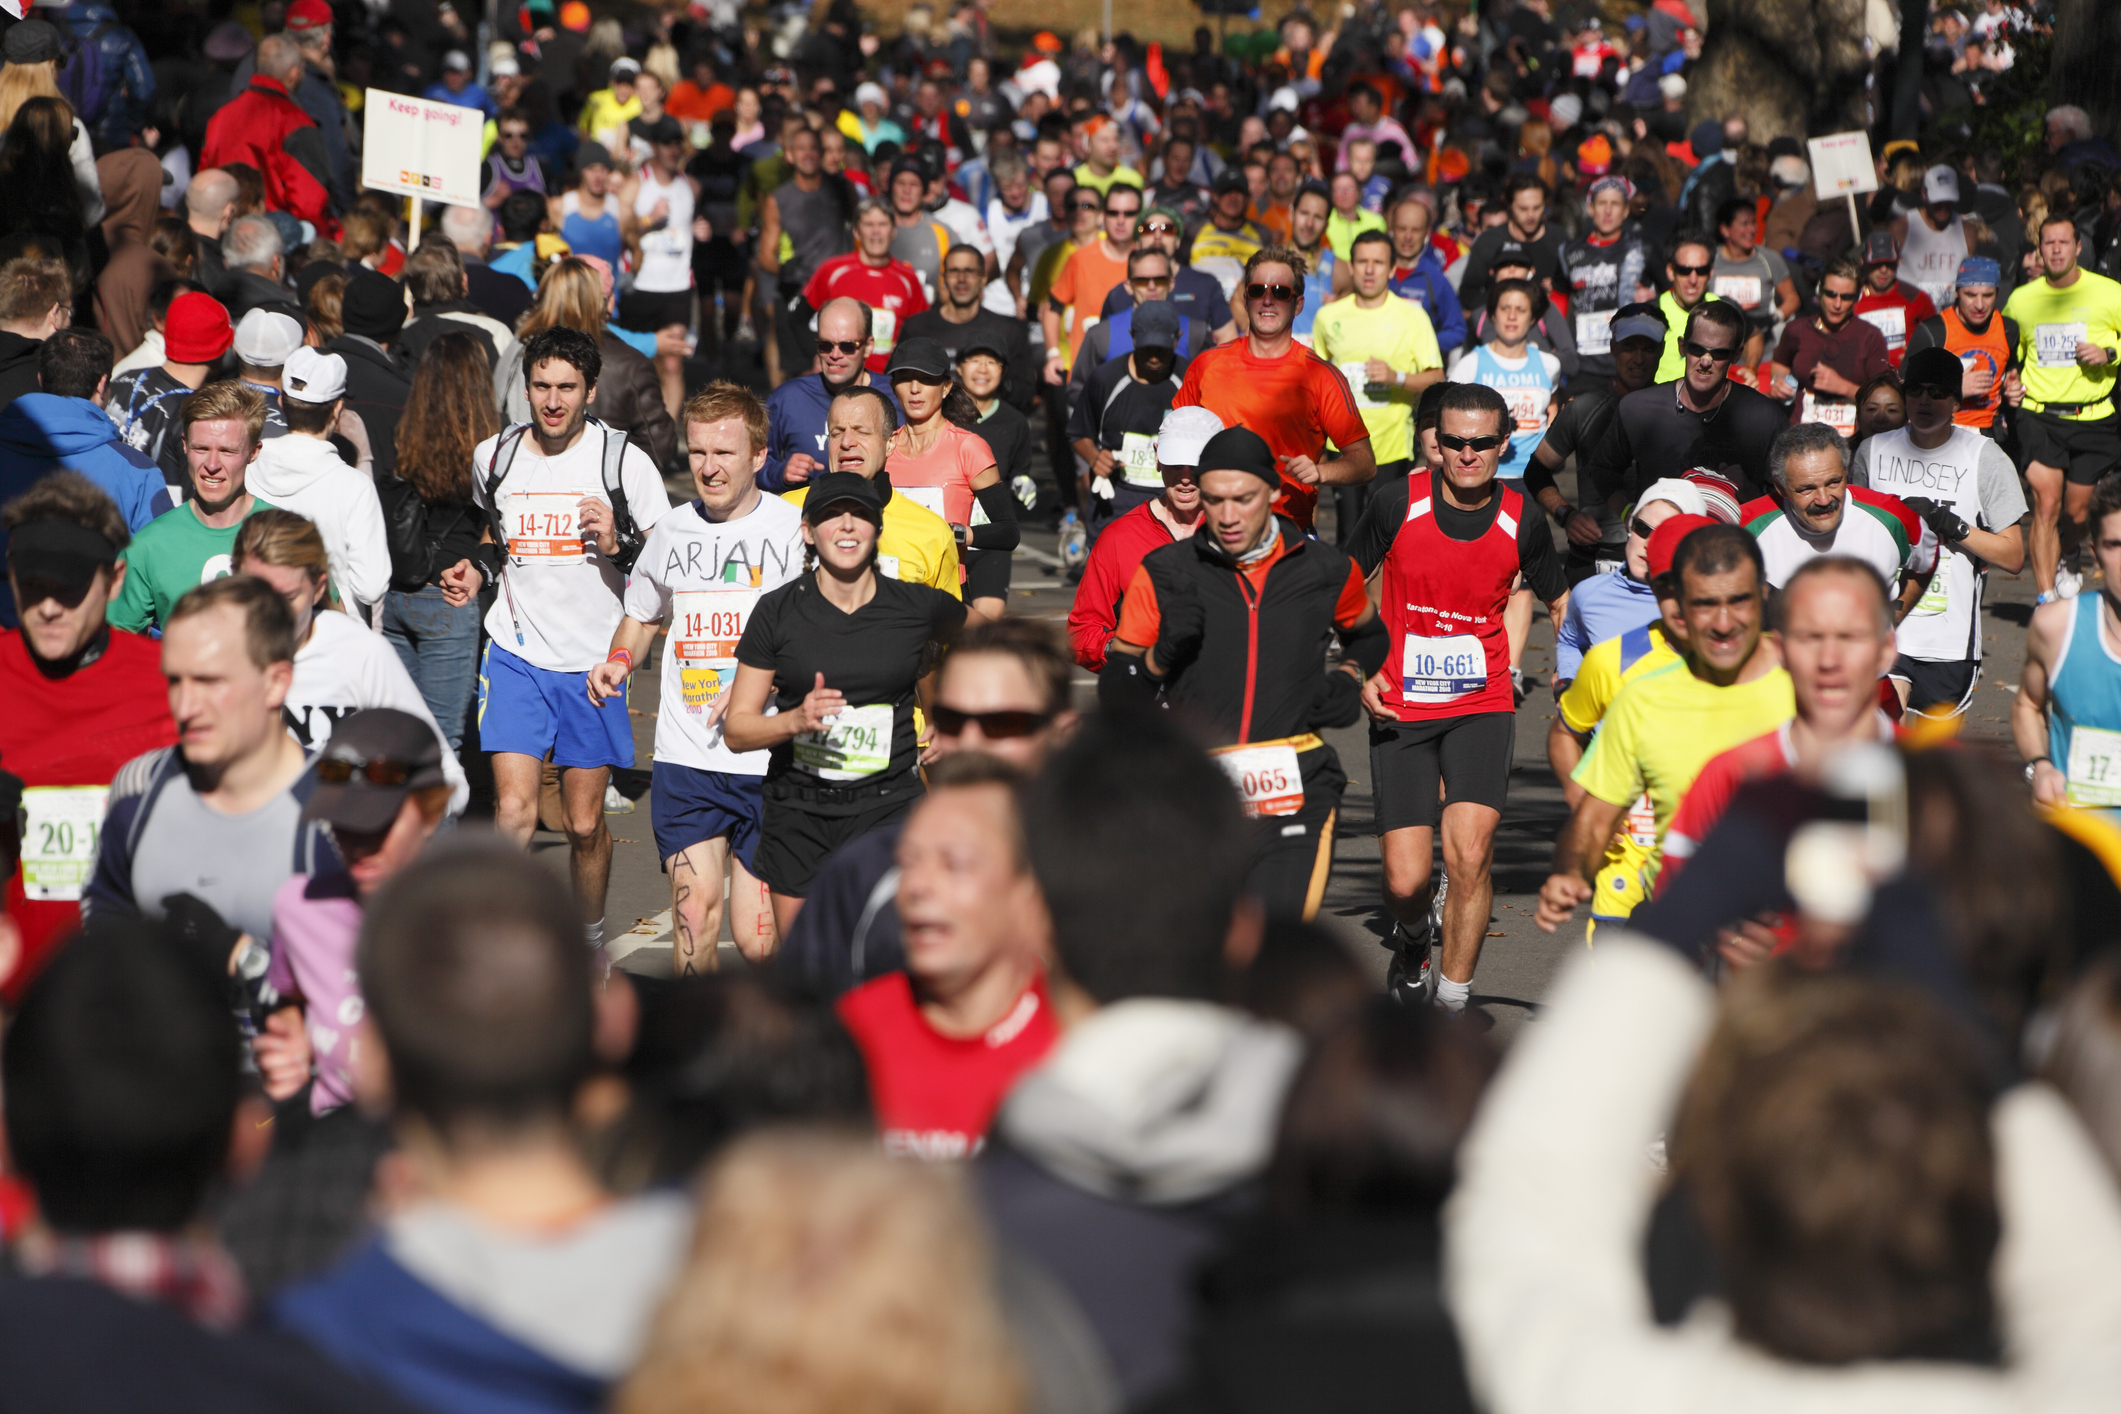 More than 40,000 runners face hottest London Marathon on record